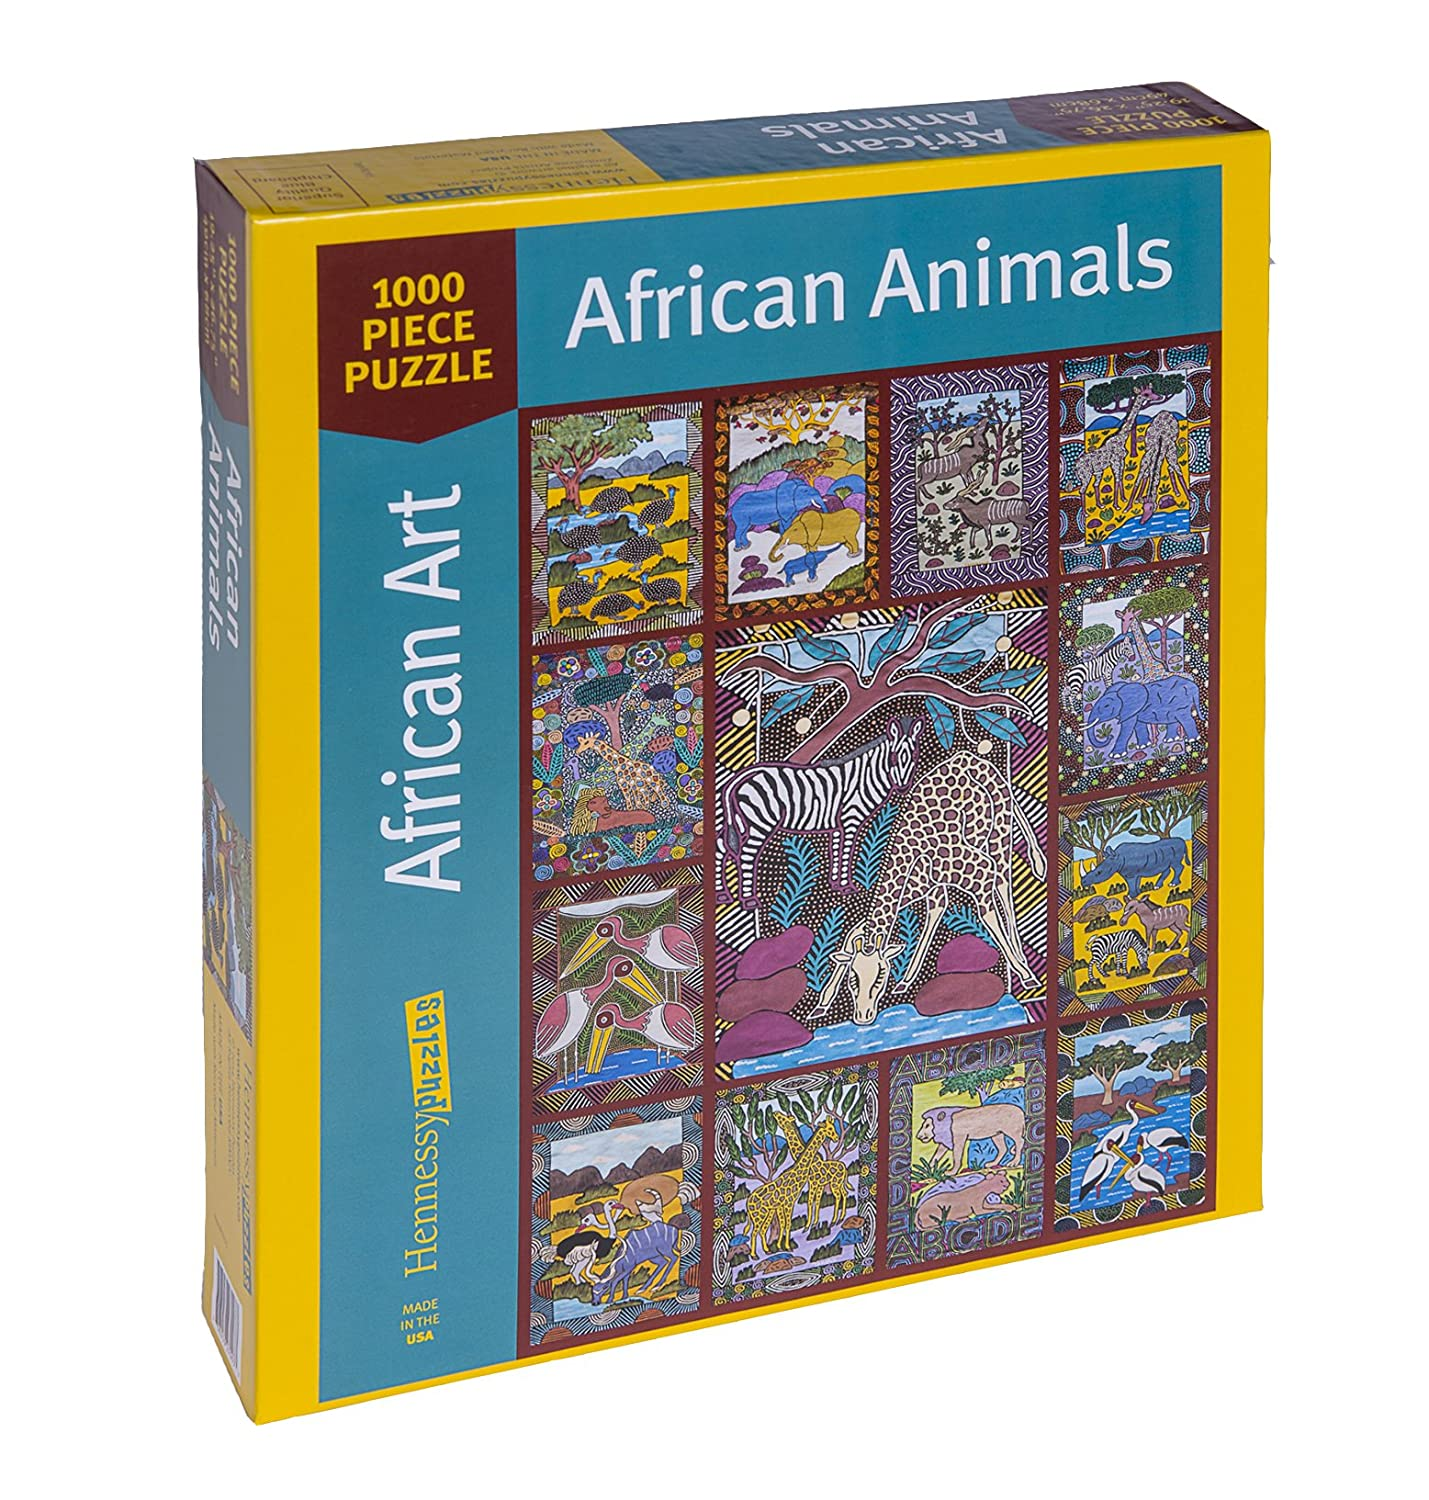 1000 Piece Bright African Animals Jigsaw Puzzle Colorful Puzzle Wild Anima/& Zimbabwe Wall Art Hennessy Puzzles SG/_B00SS06HC4/_US